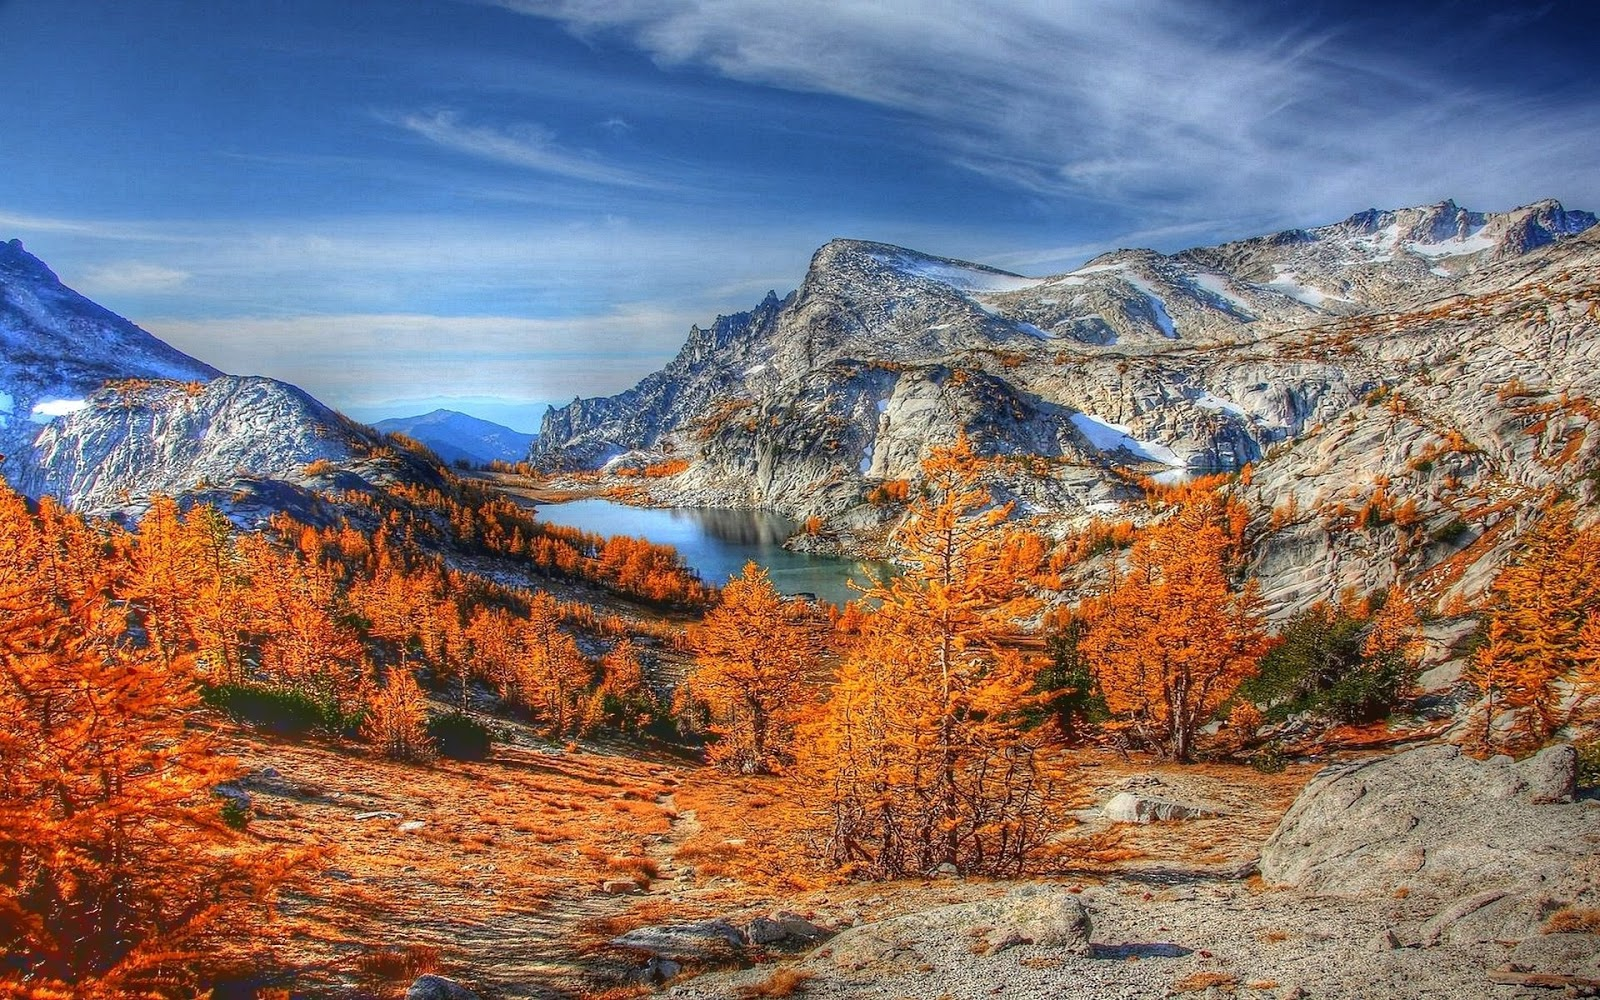 Mountain fall backgrounds